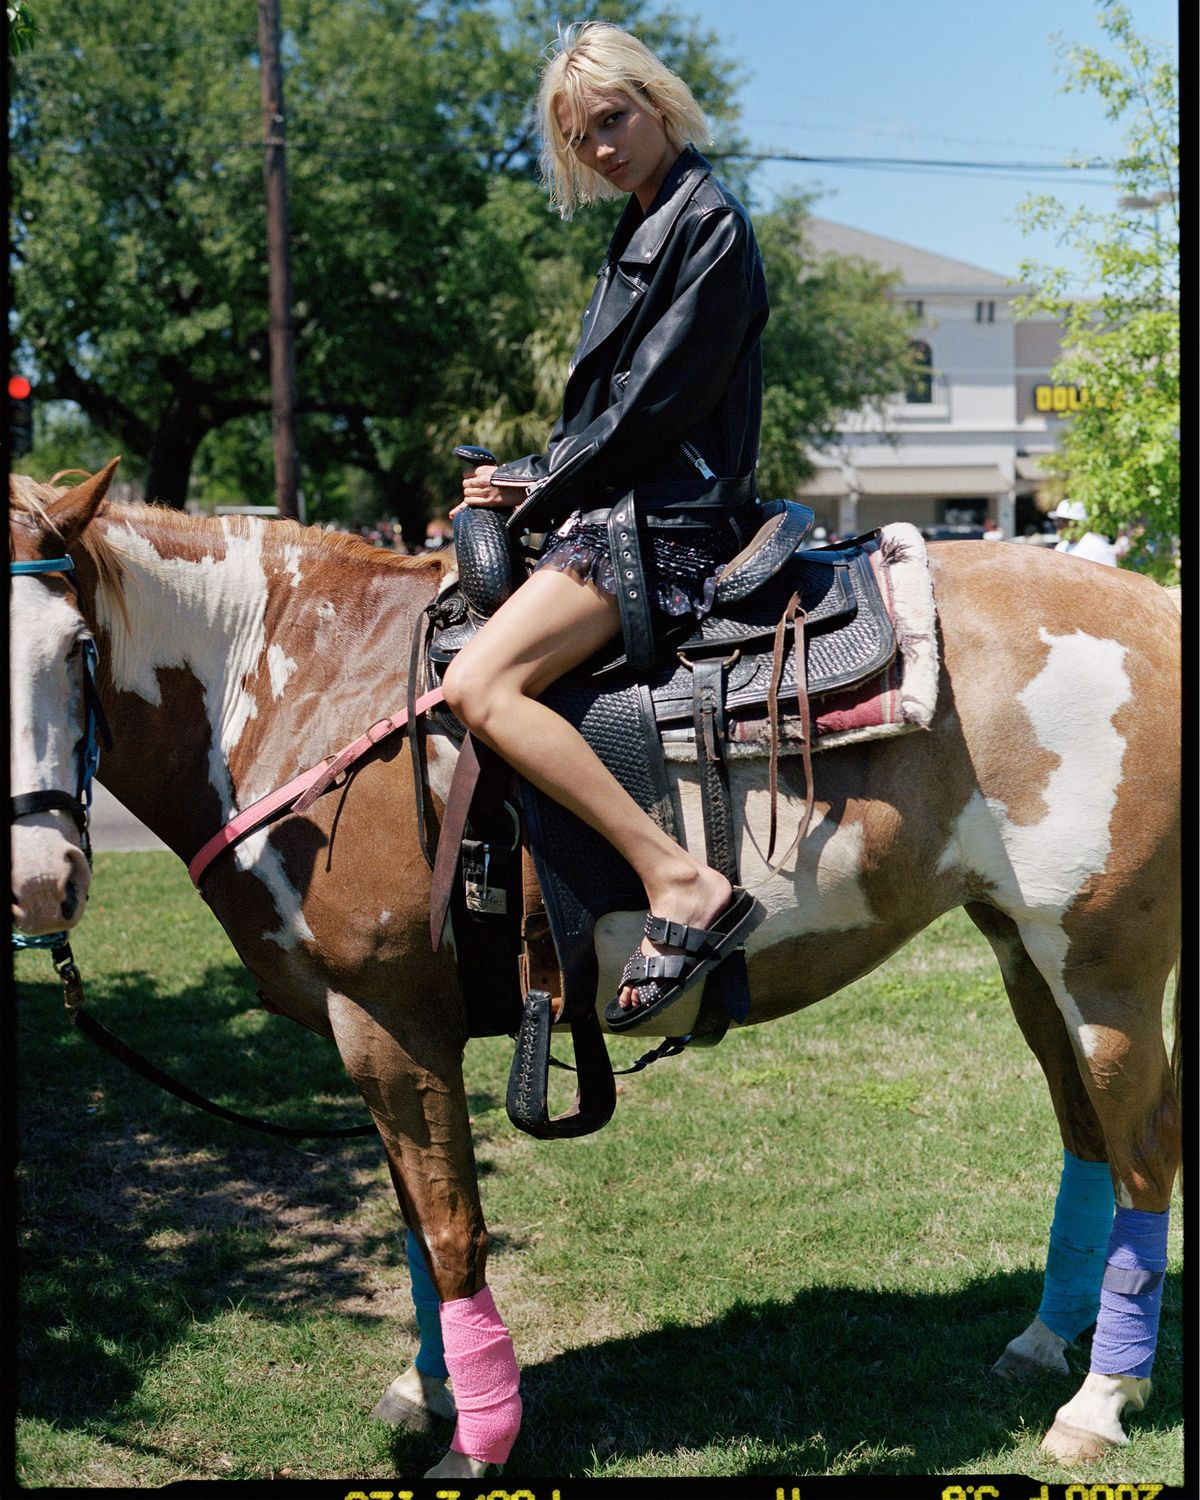 Photograph of a young woman sat on a horse wearing a black leather jacket and shorts from our most recent summer collection.